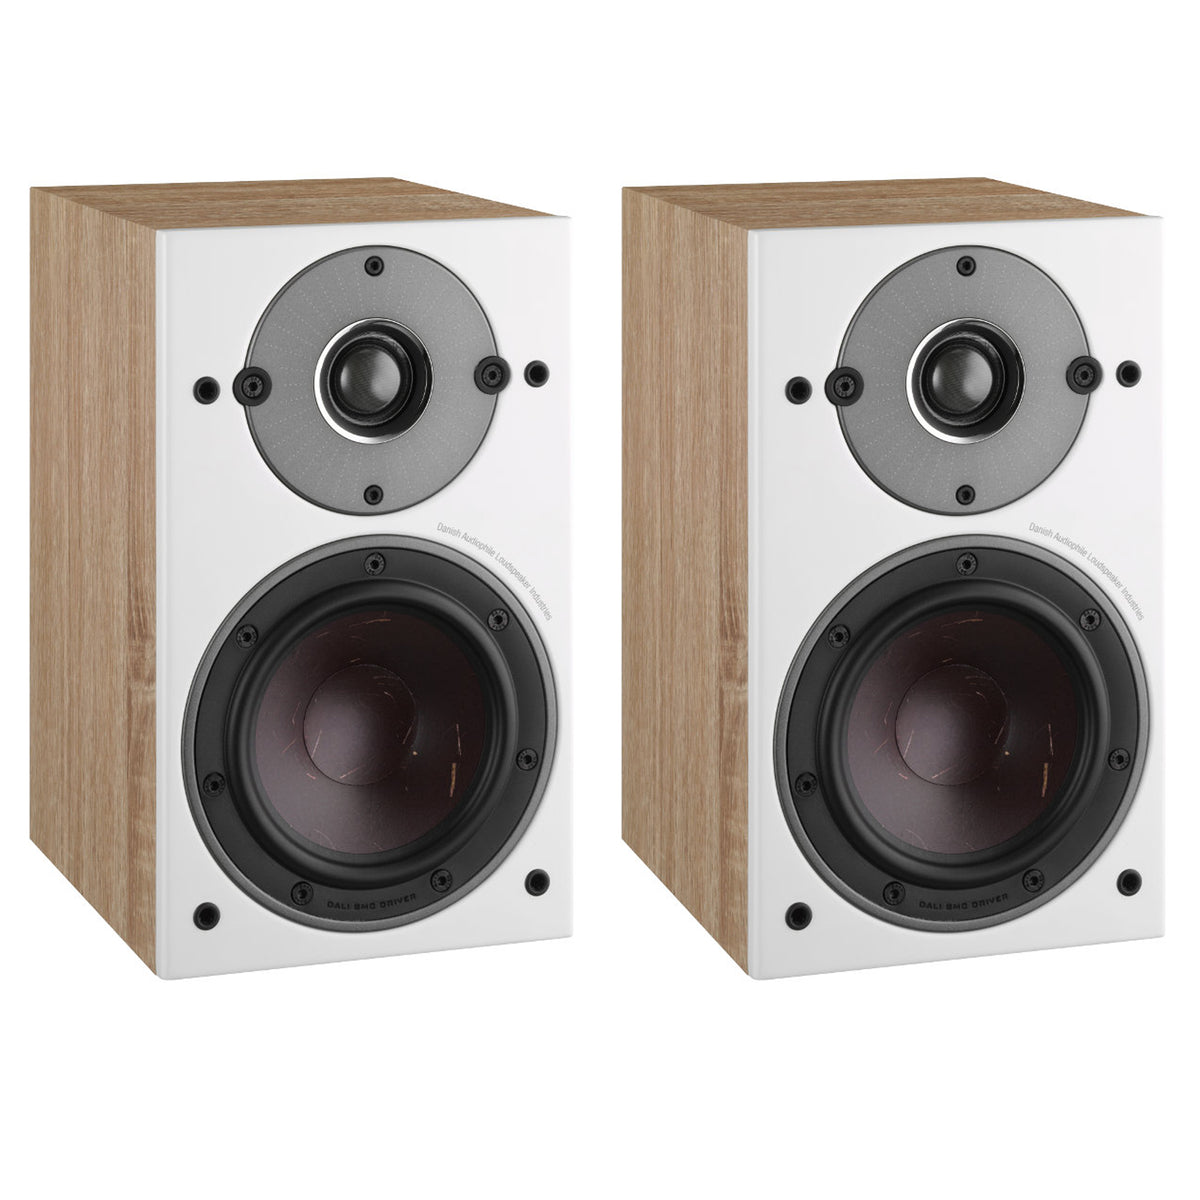 Dali: Oberon 1 Passive Bookshelf Speakers - Light Oak (Pair)